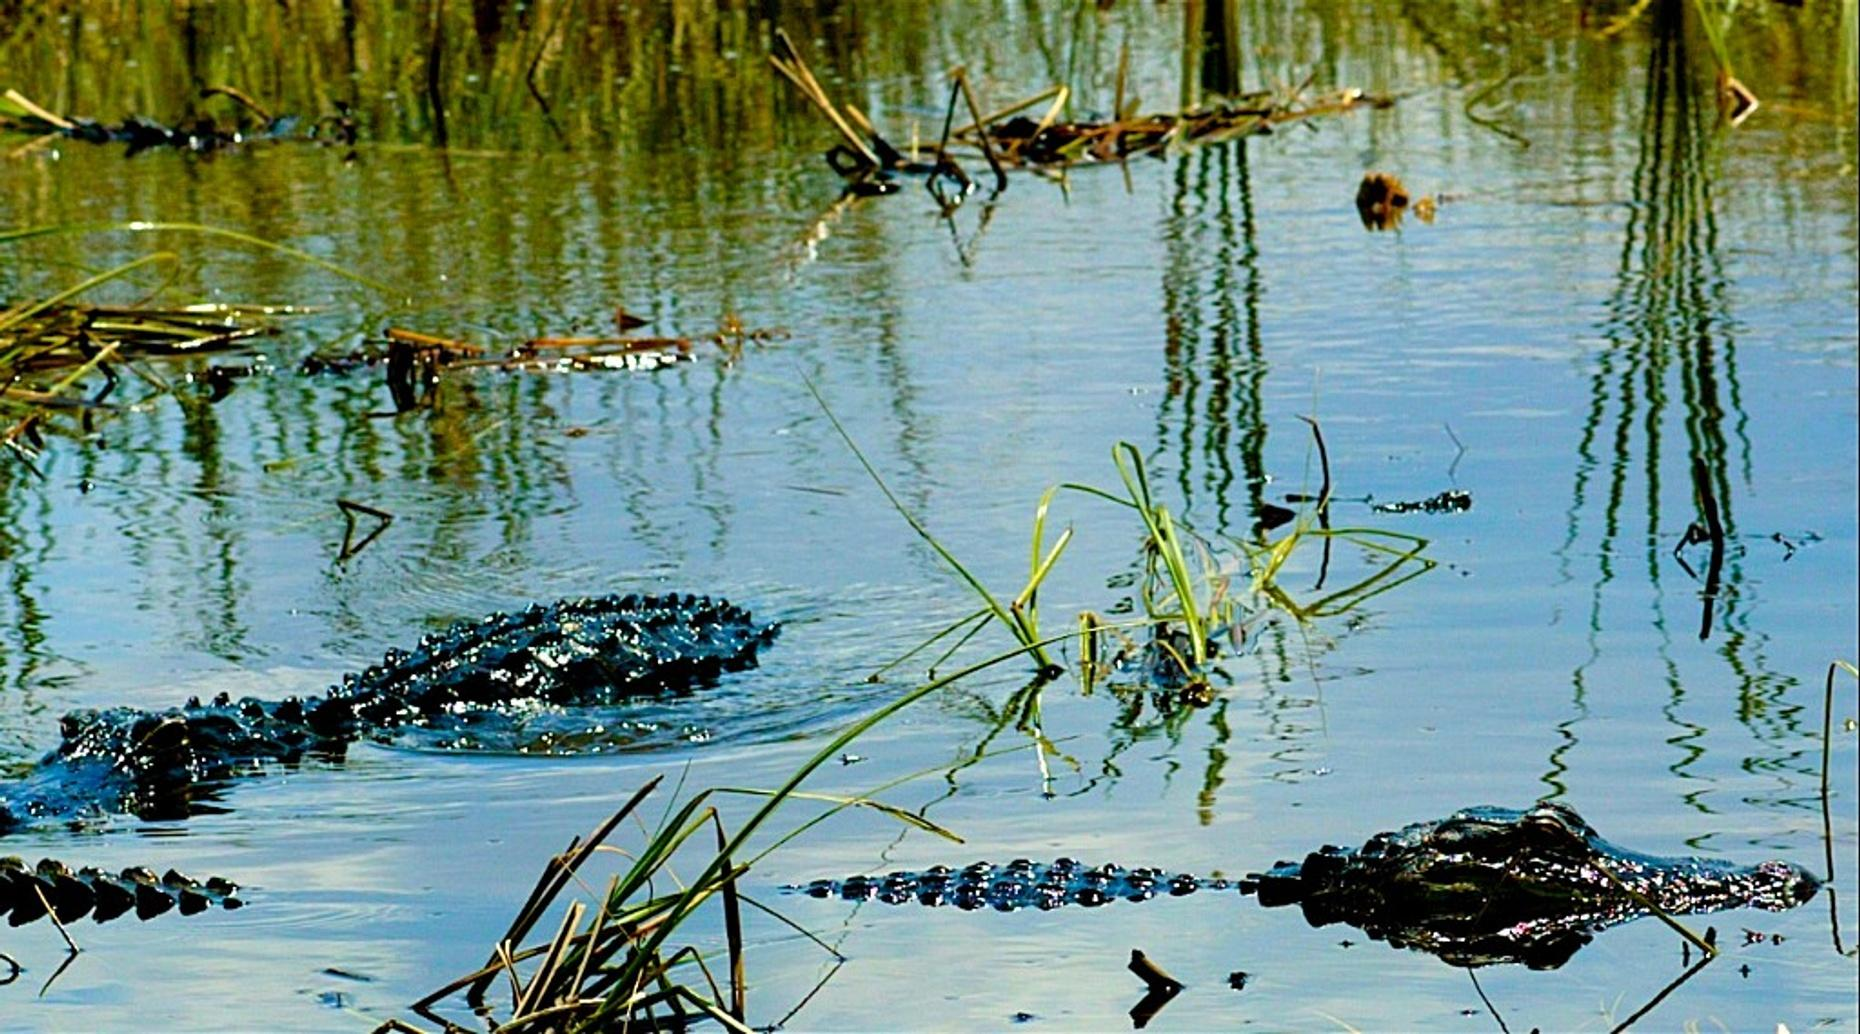 30-Minute Lake Jesup Airboat Ride in Oviedo